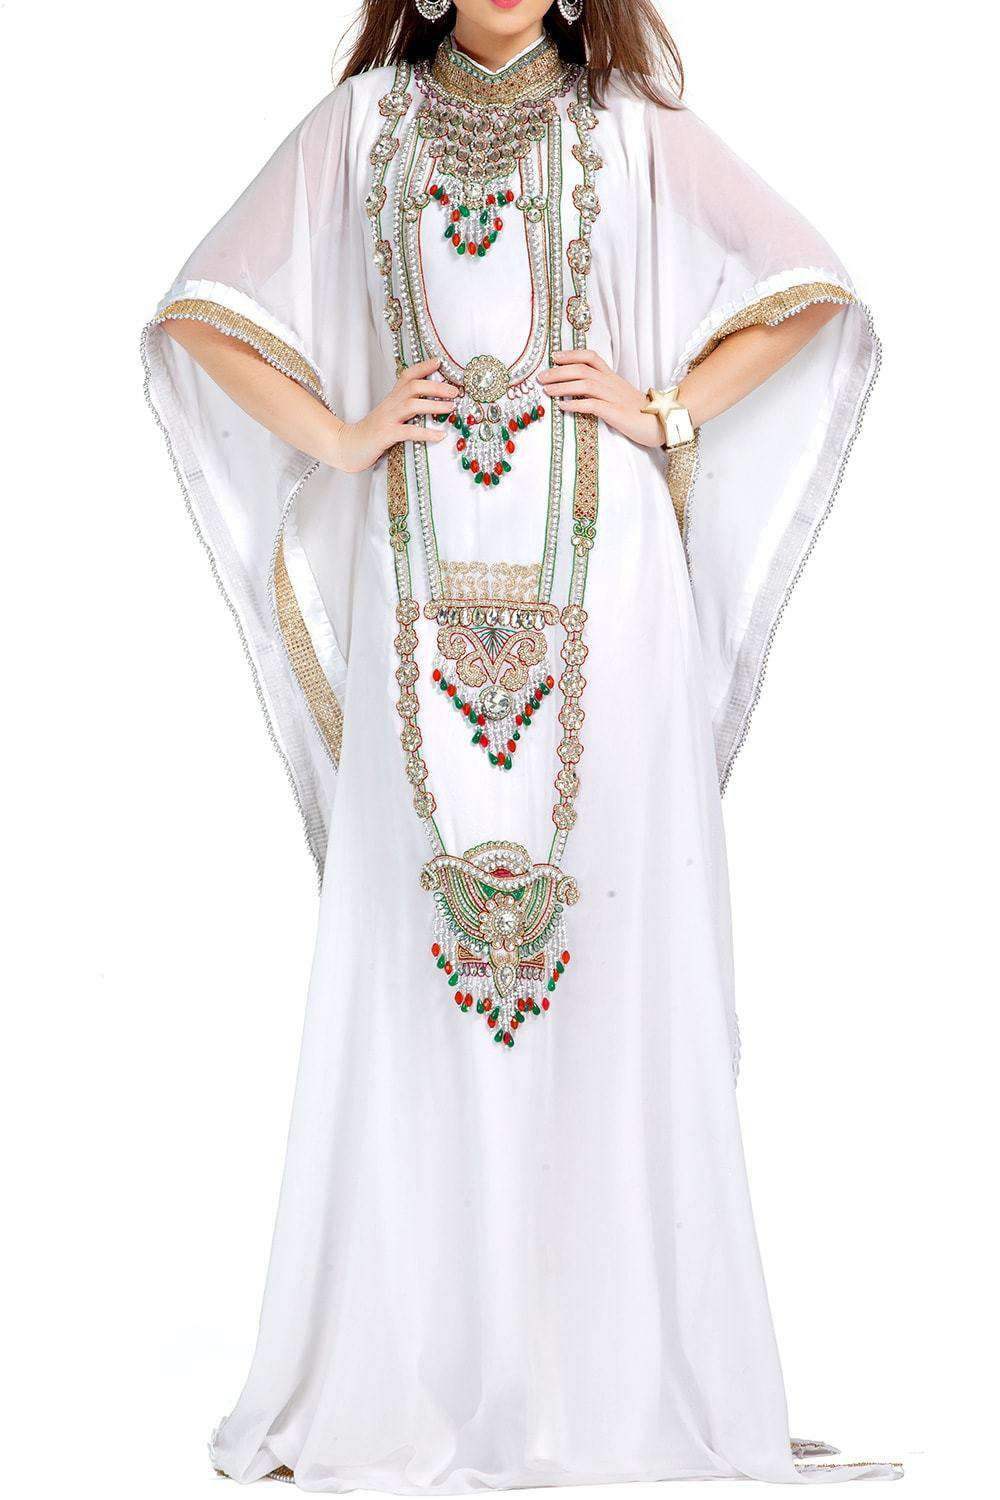 Designer Stylish And Elegant White Embroidered Arabian Kaftan